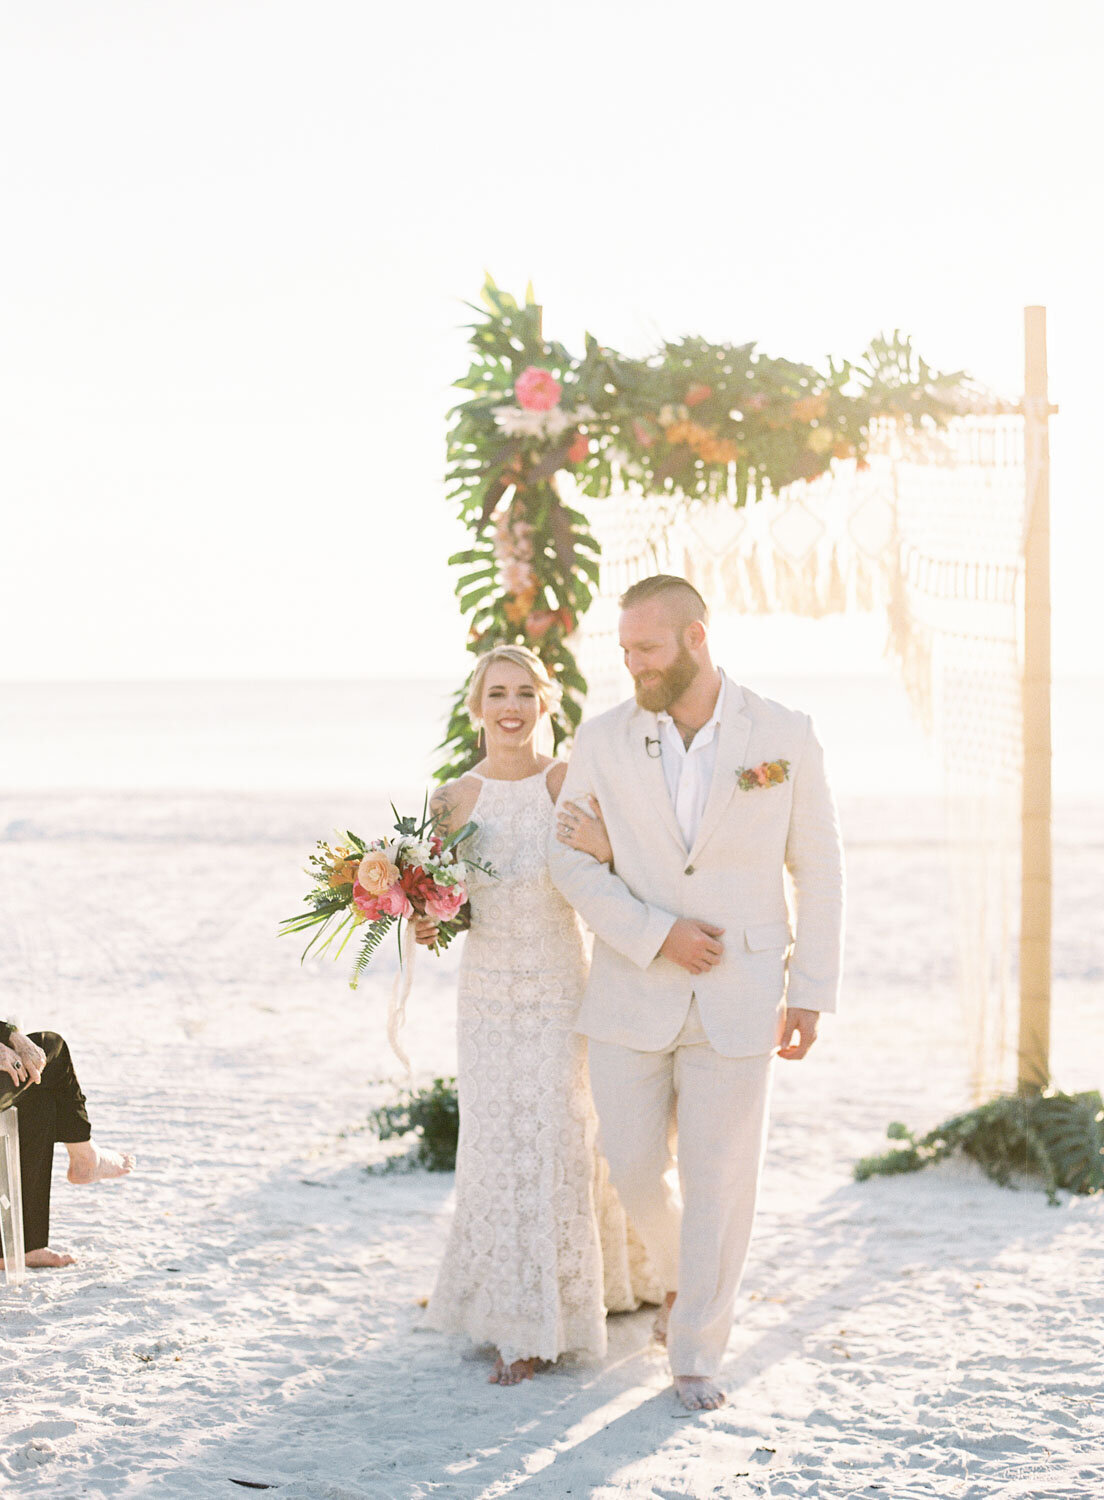 elegant-bohemian-tropical-december-destination-wedding-melanie-gabrielle-photography-martha-stewart-submission-024